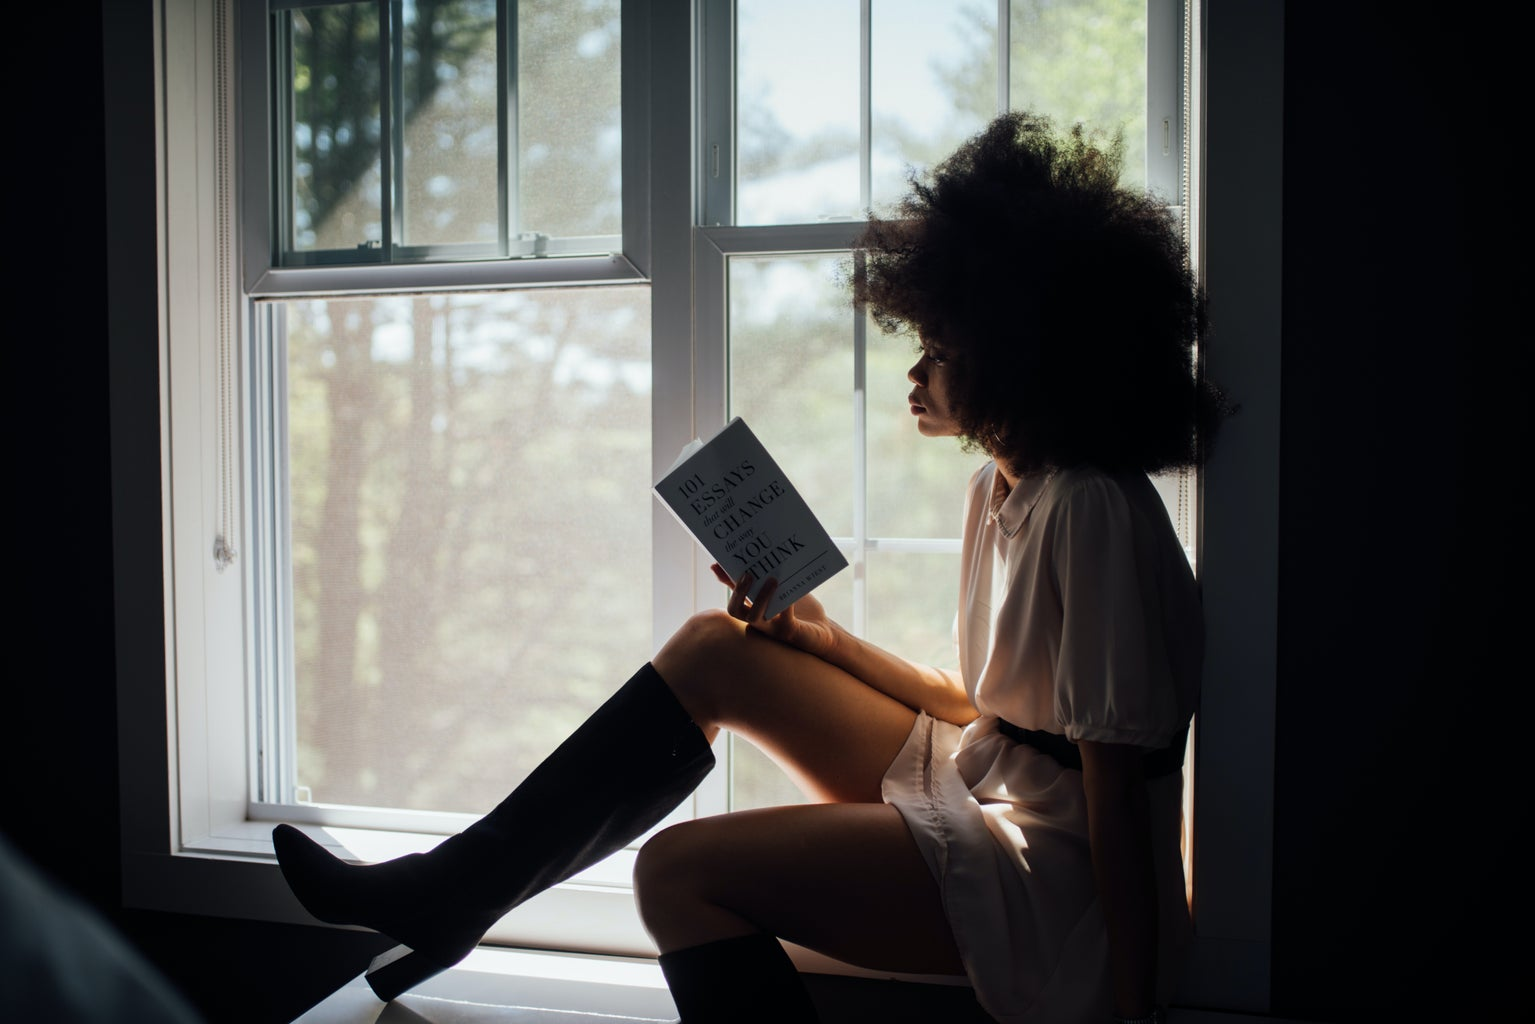 woman sitting at window reading book